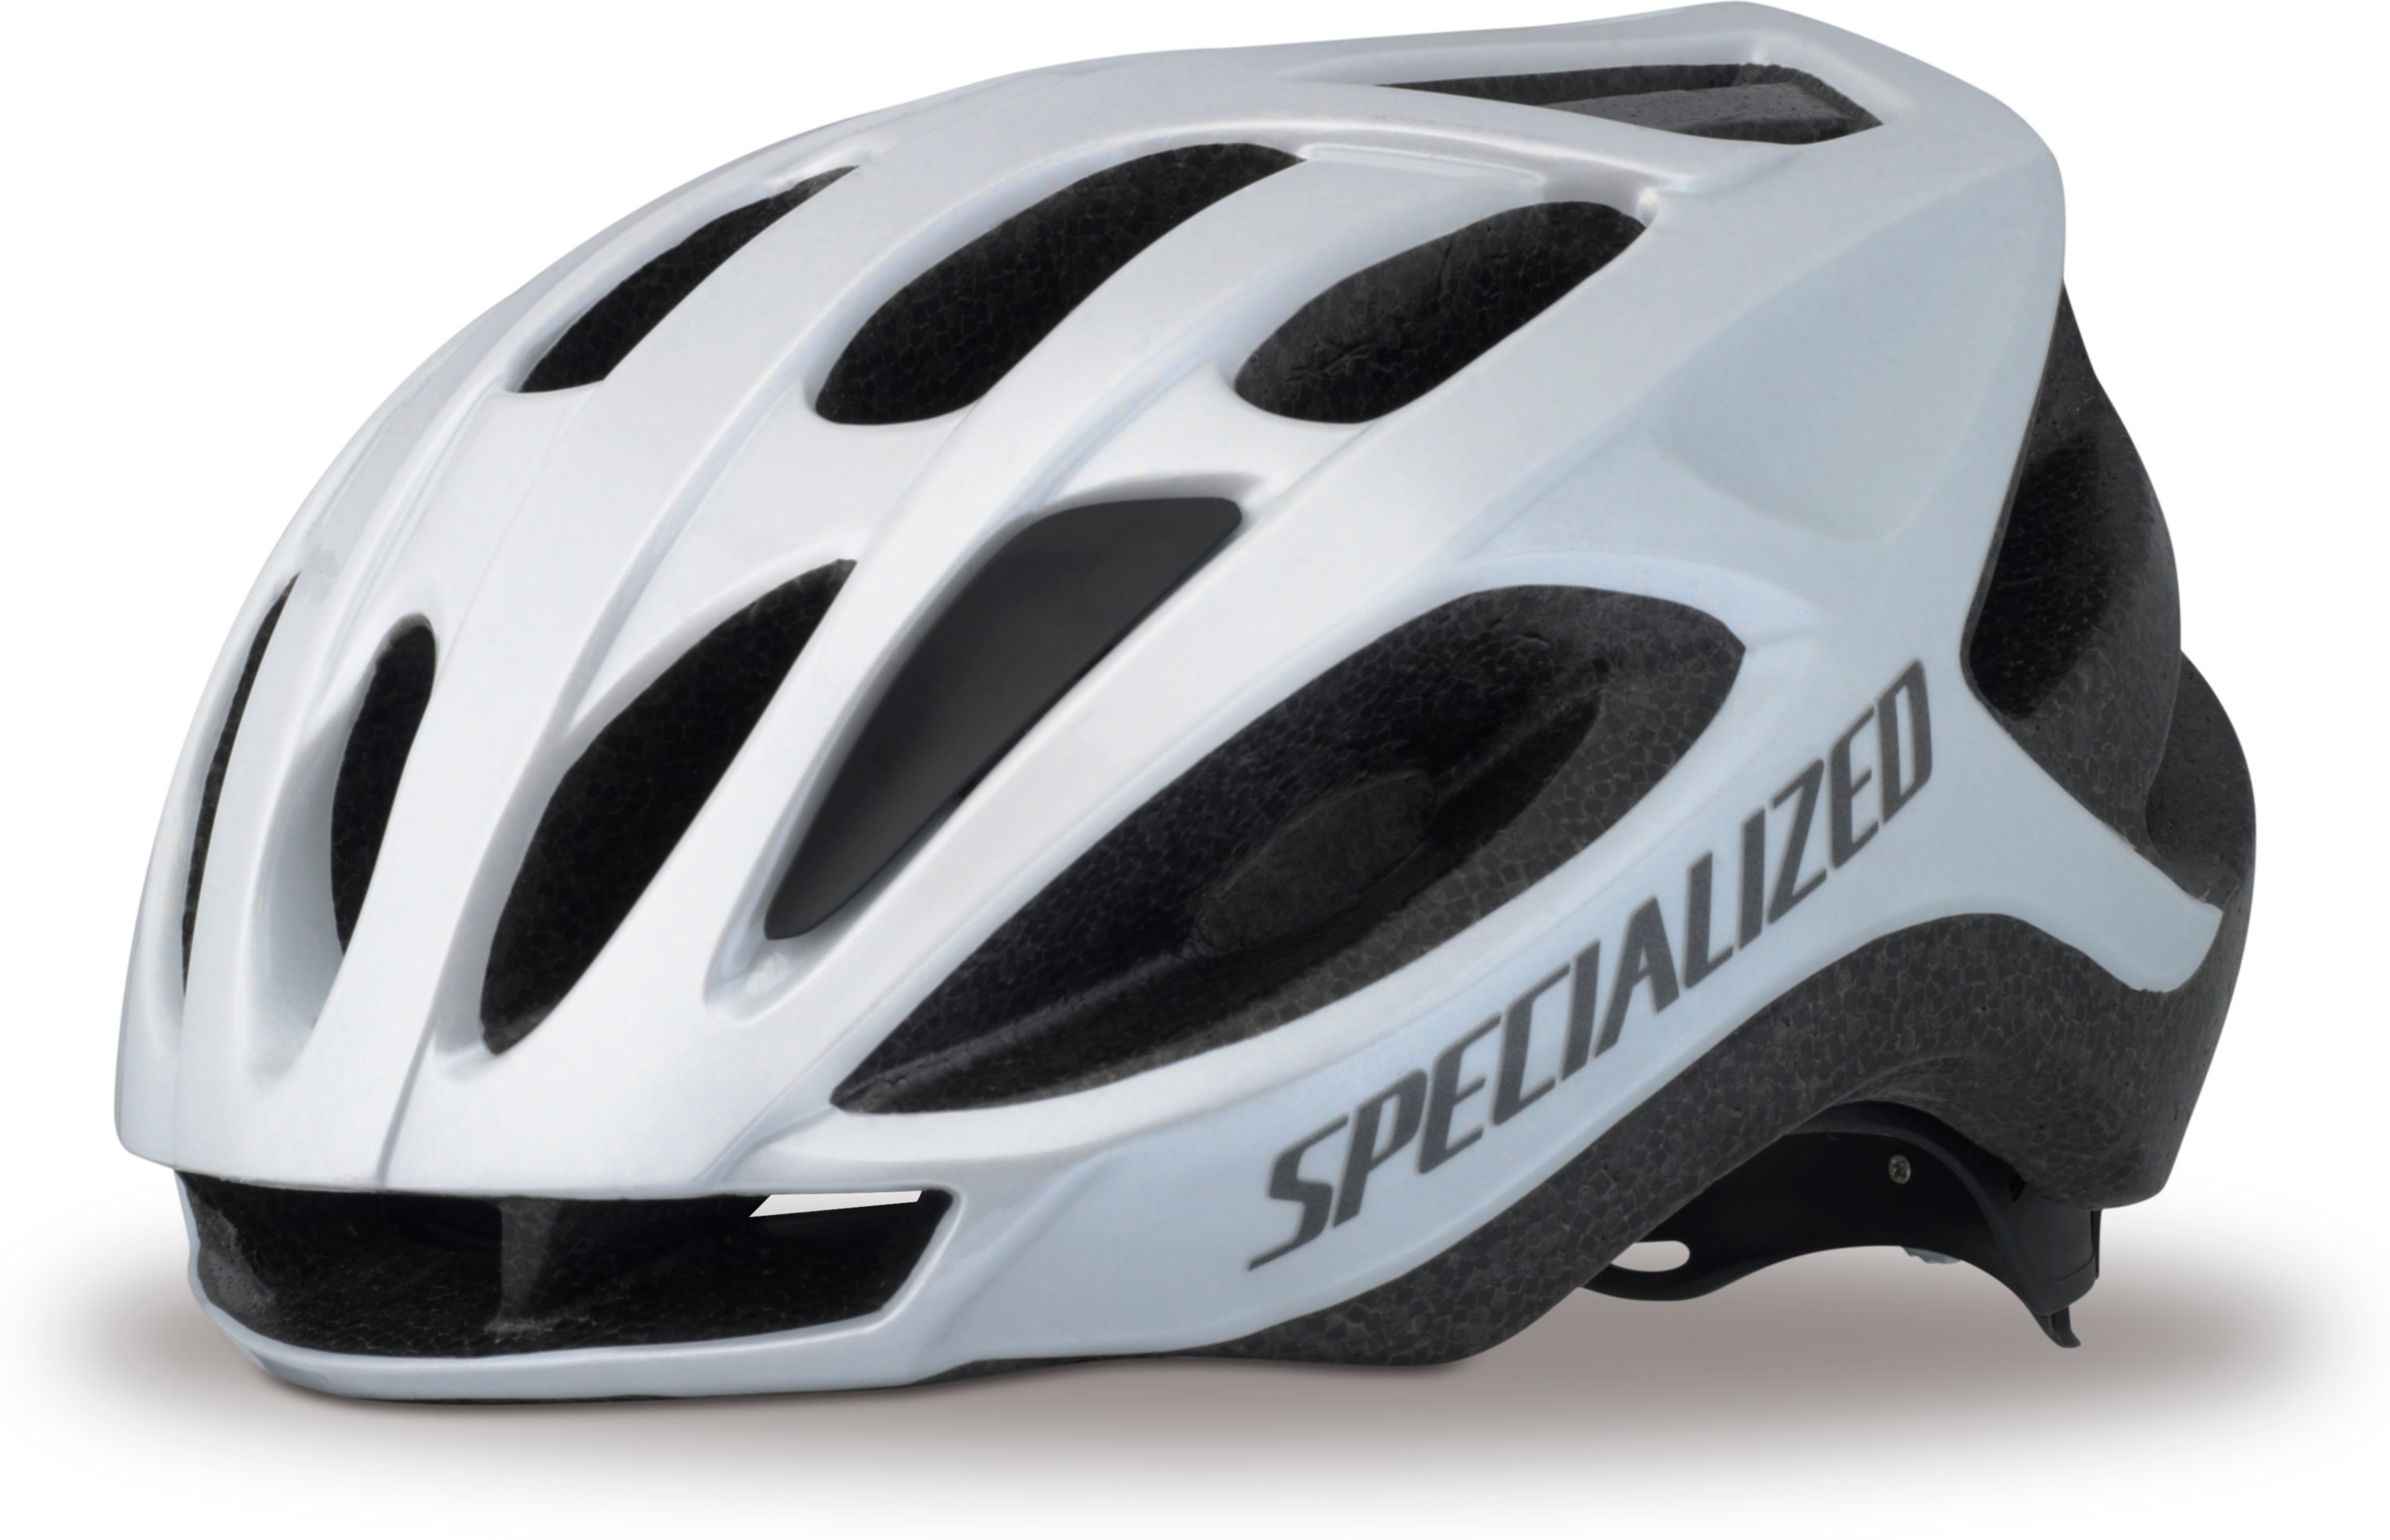 SPECIALIZED ALIGN HLMT CE WHT ADLT - Alpha Bikes